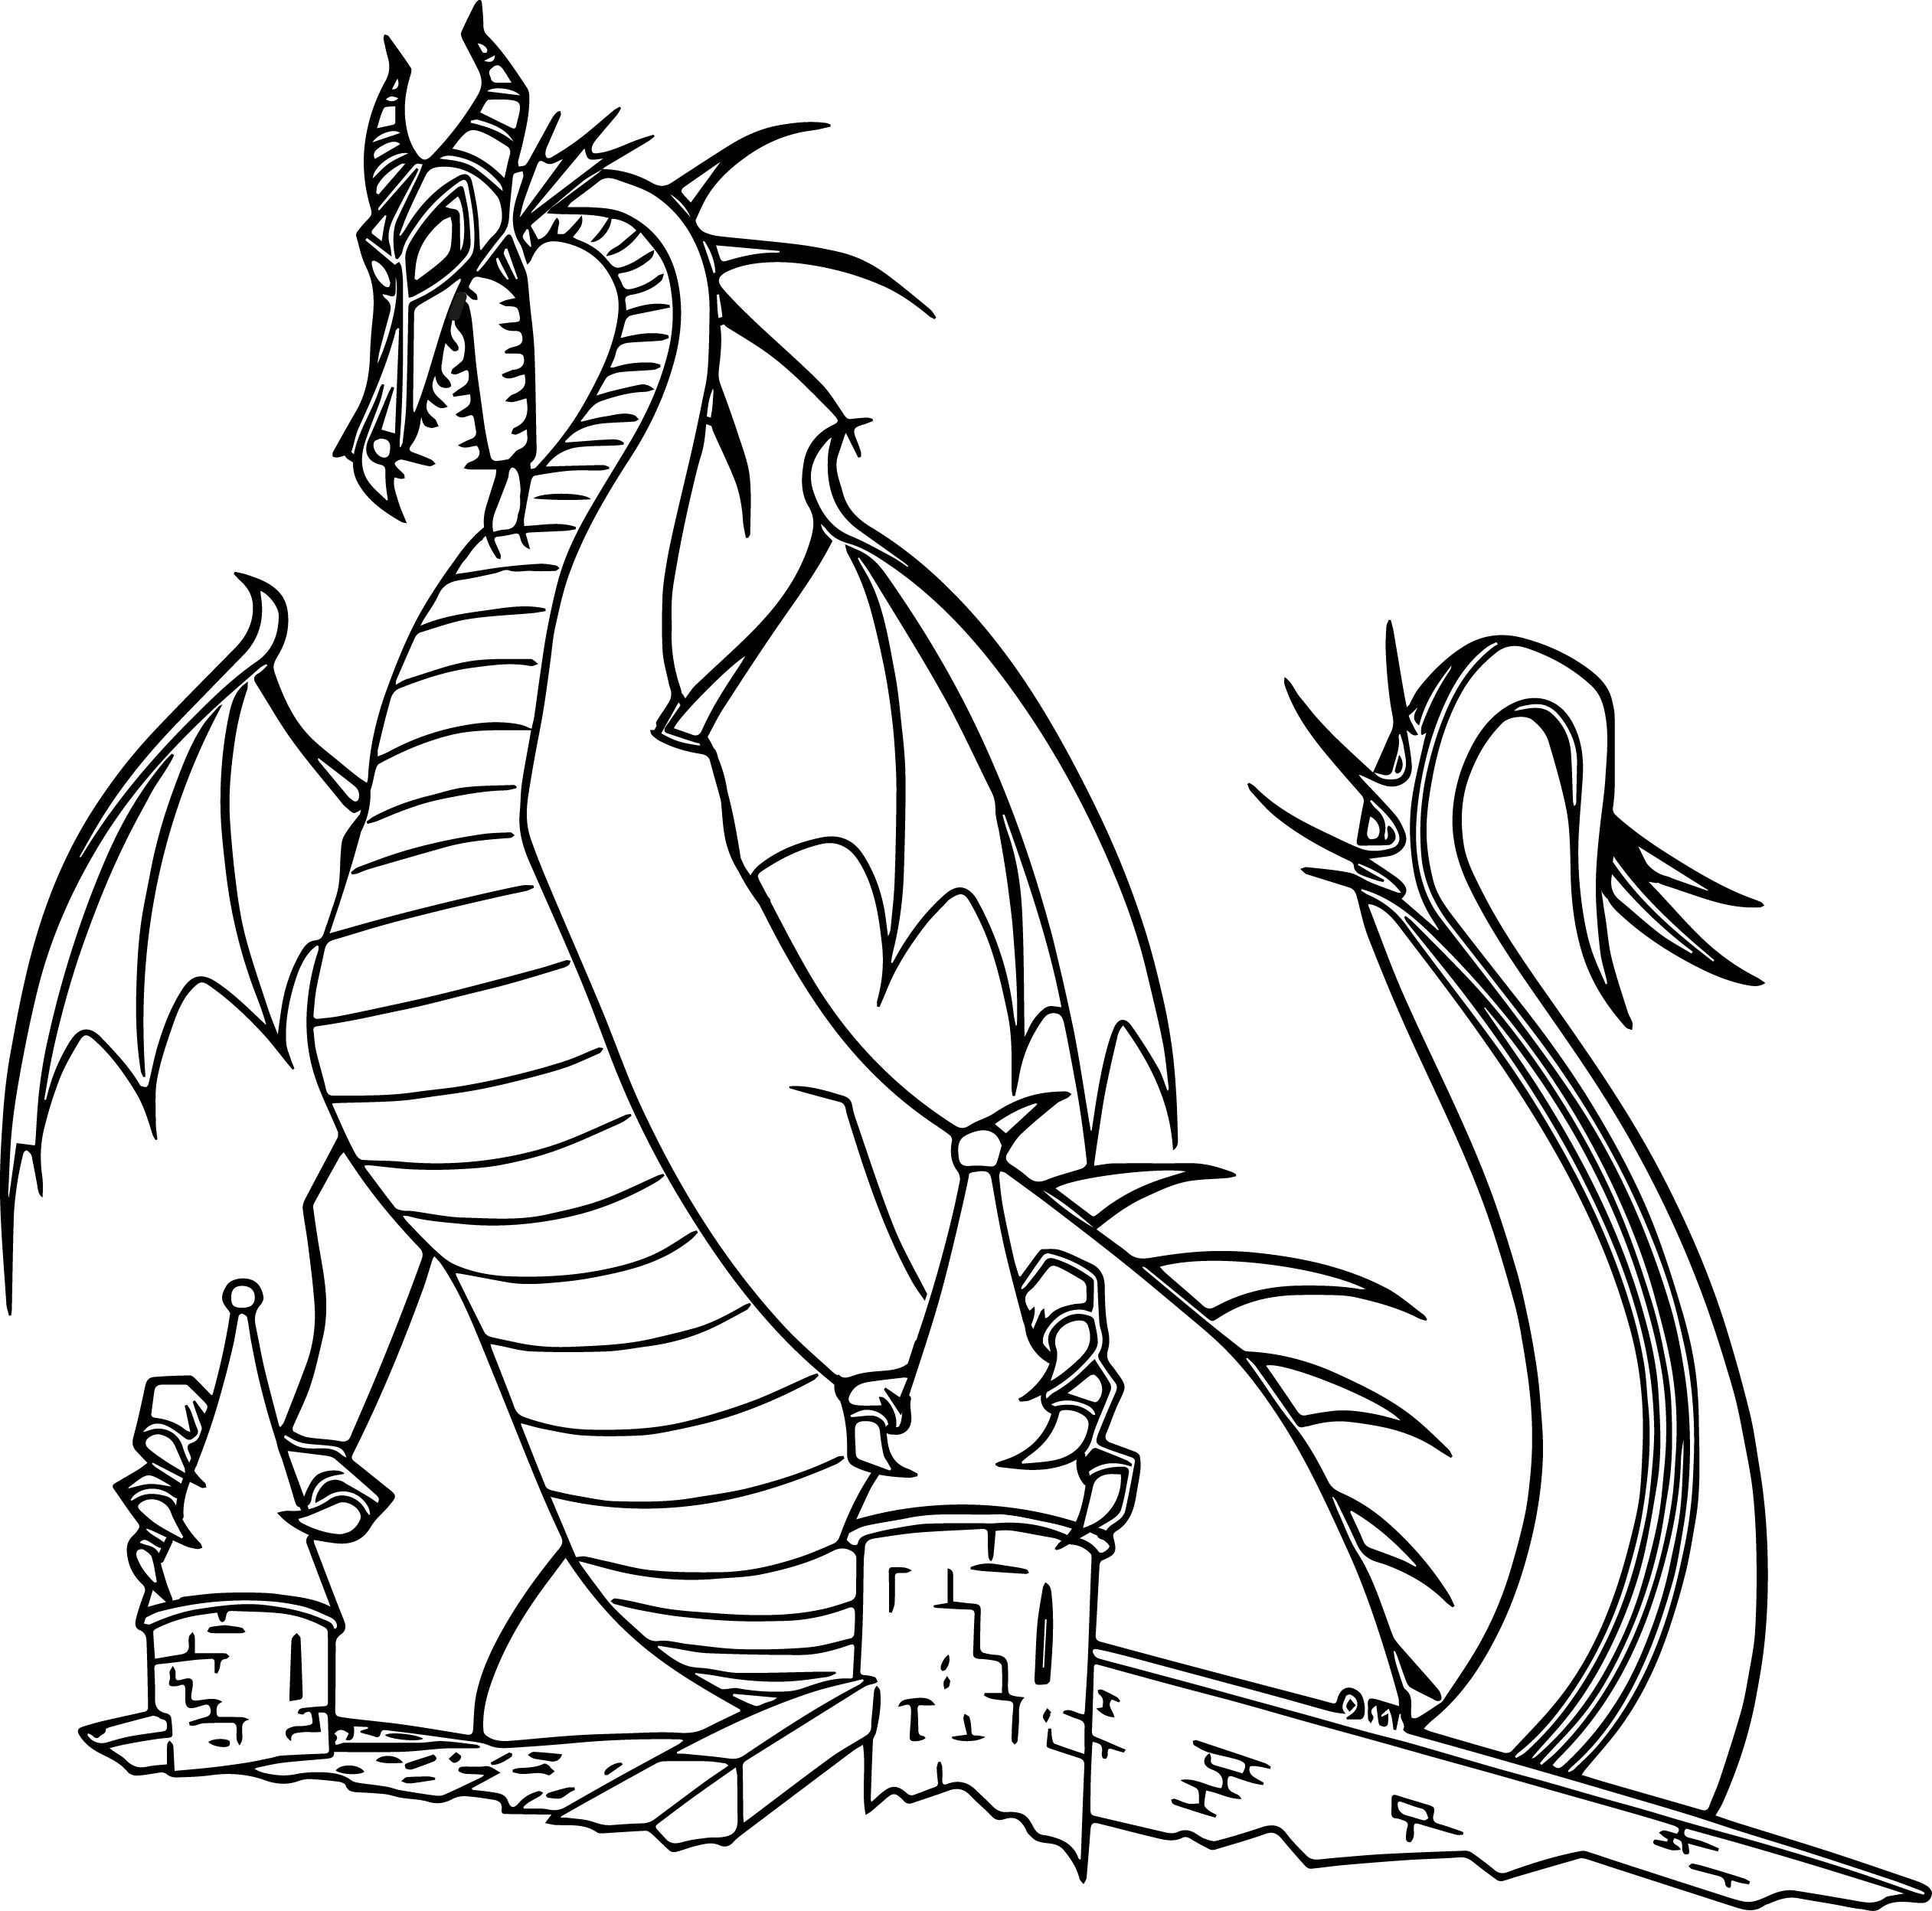 Dragon Maleficent Coloring Page Cartoon Coloring Pages Dinosaur Coloring Pages Dragon Coloring Page